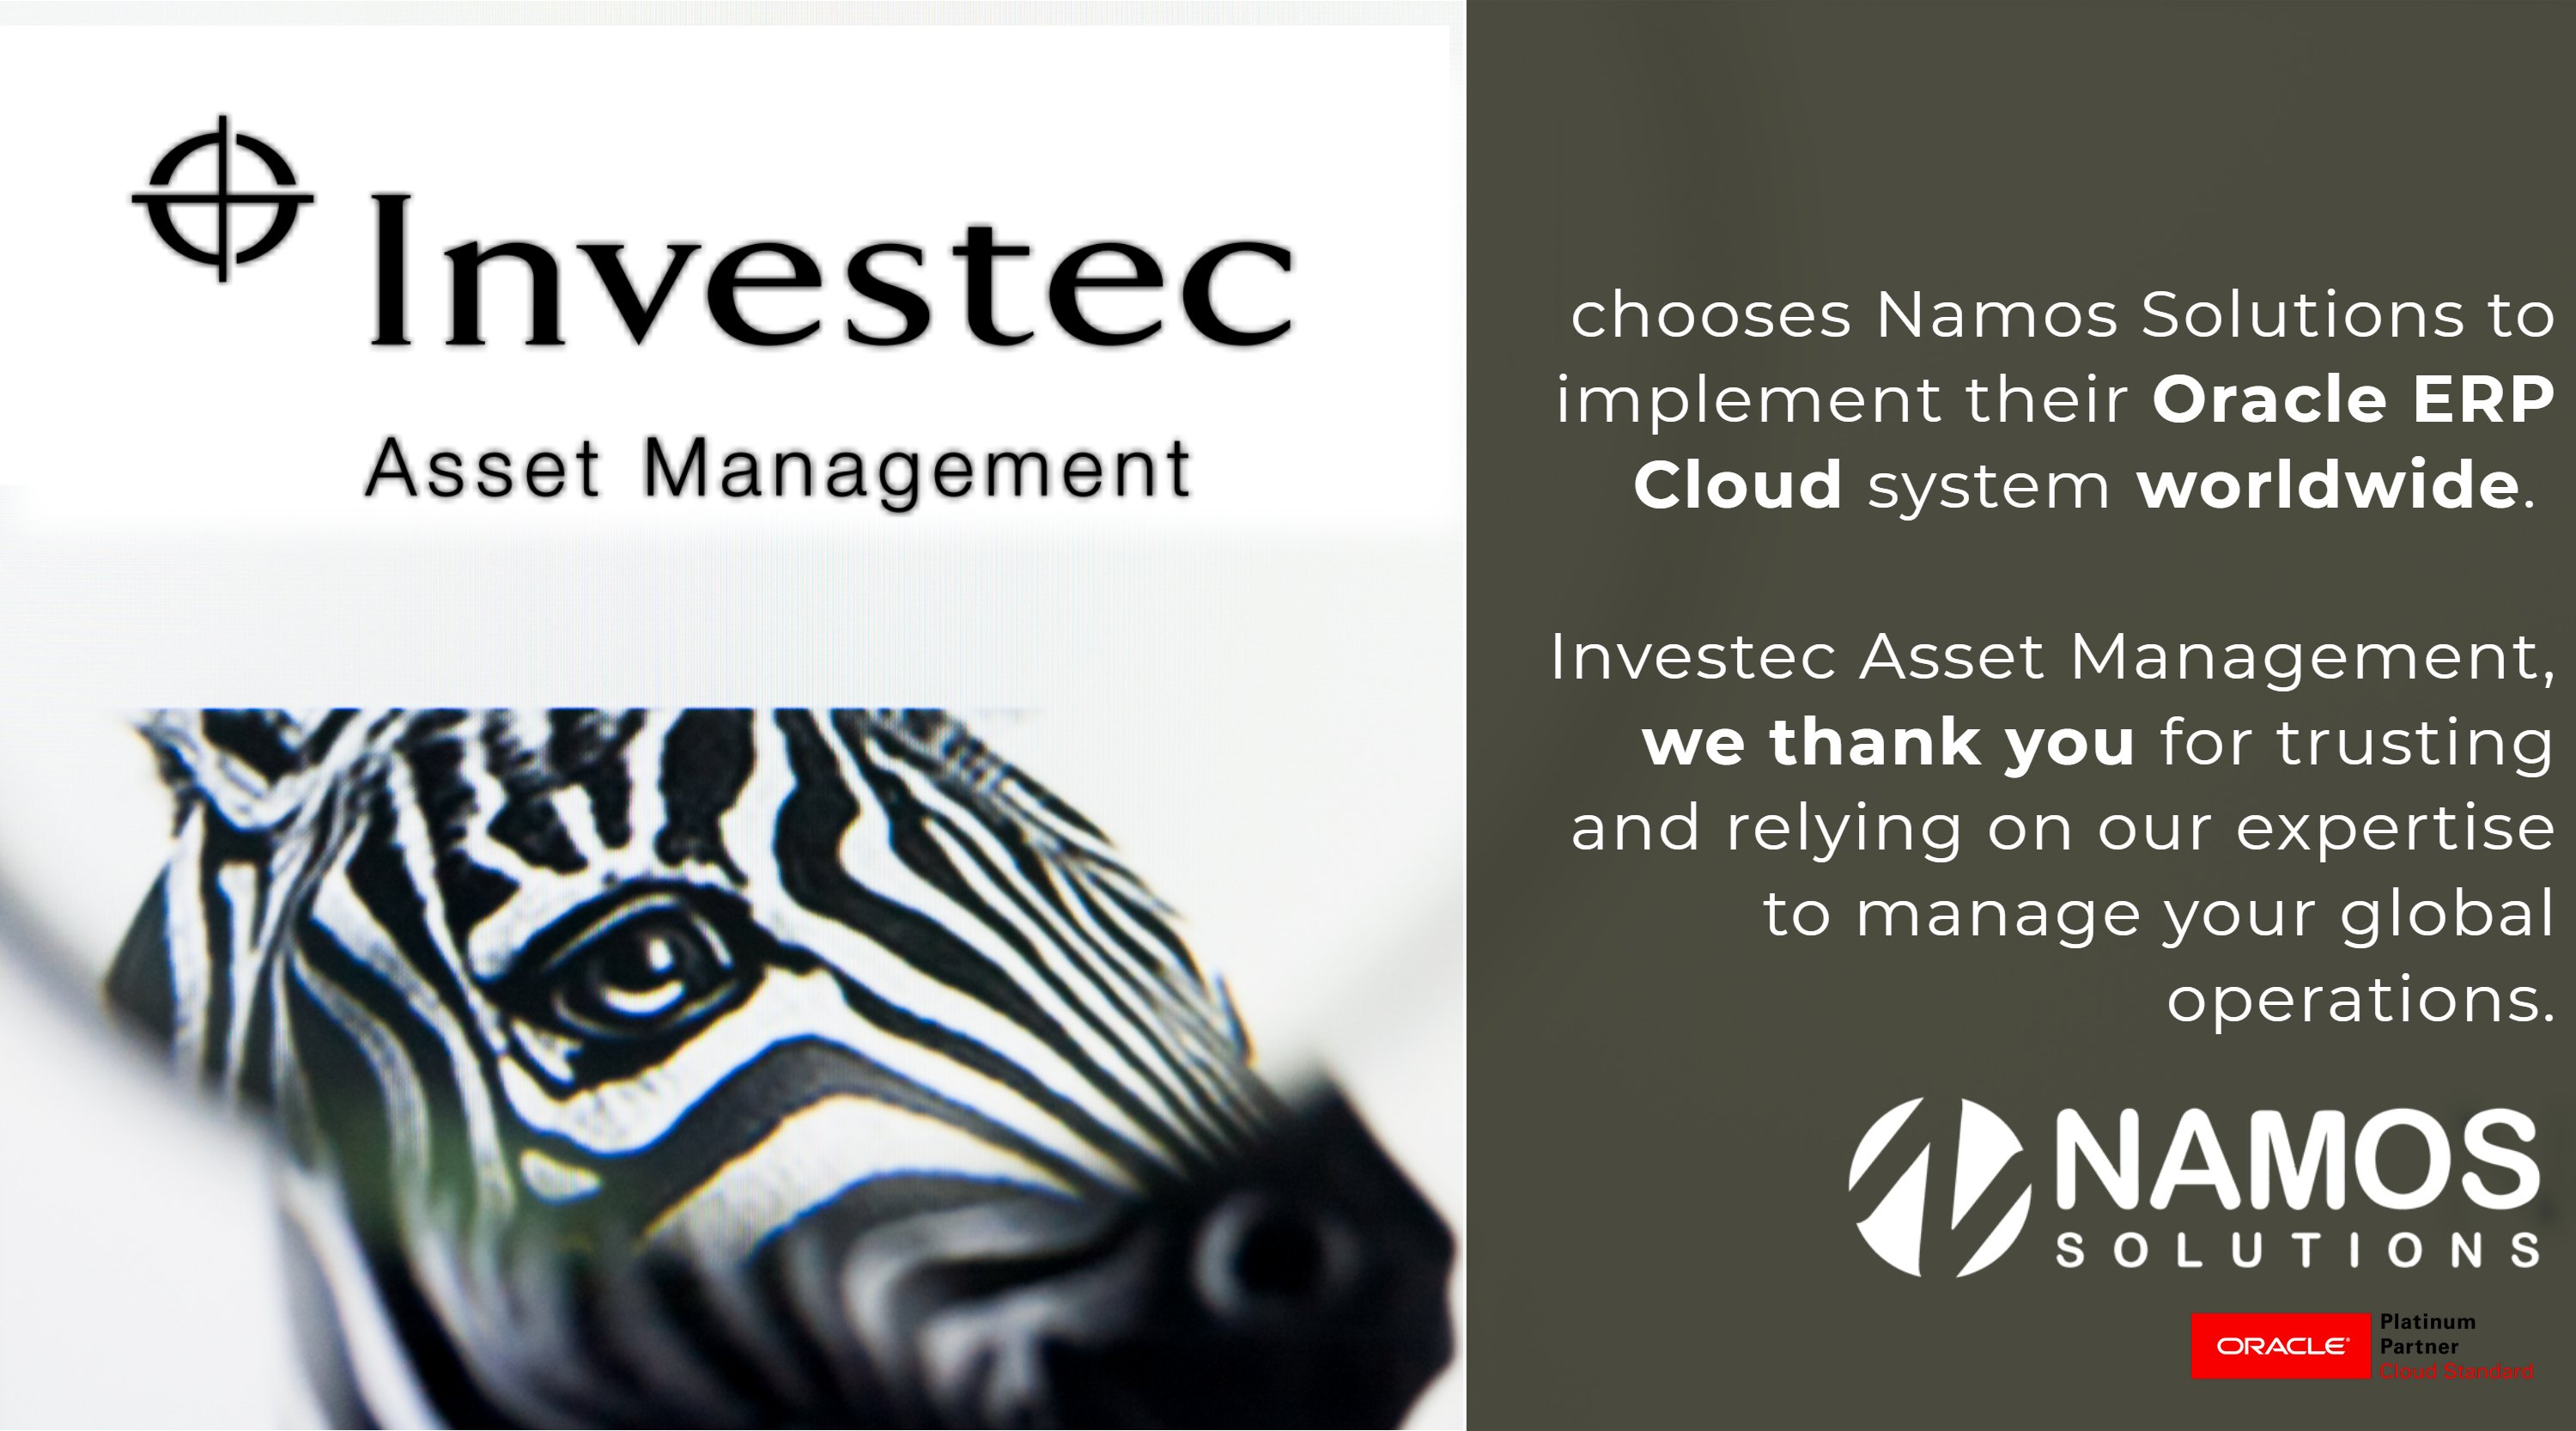 Investec Asset Management Selects Namos Solutions for Global ERP Roll Out